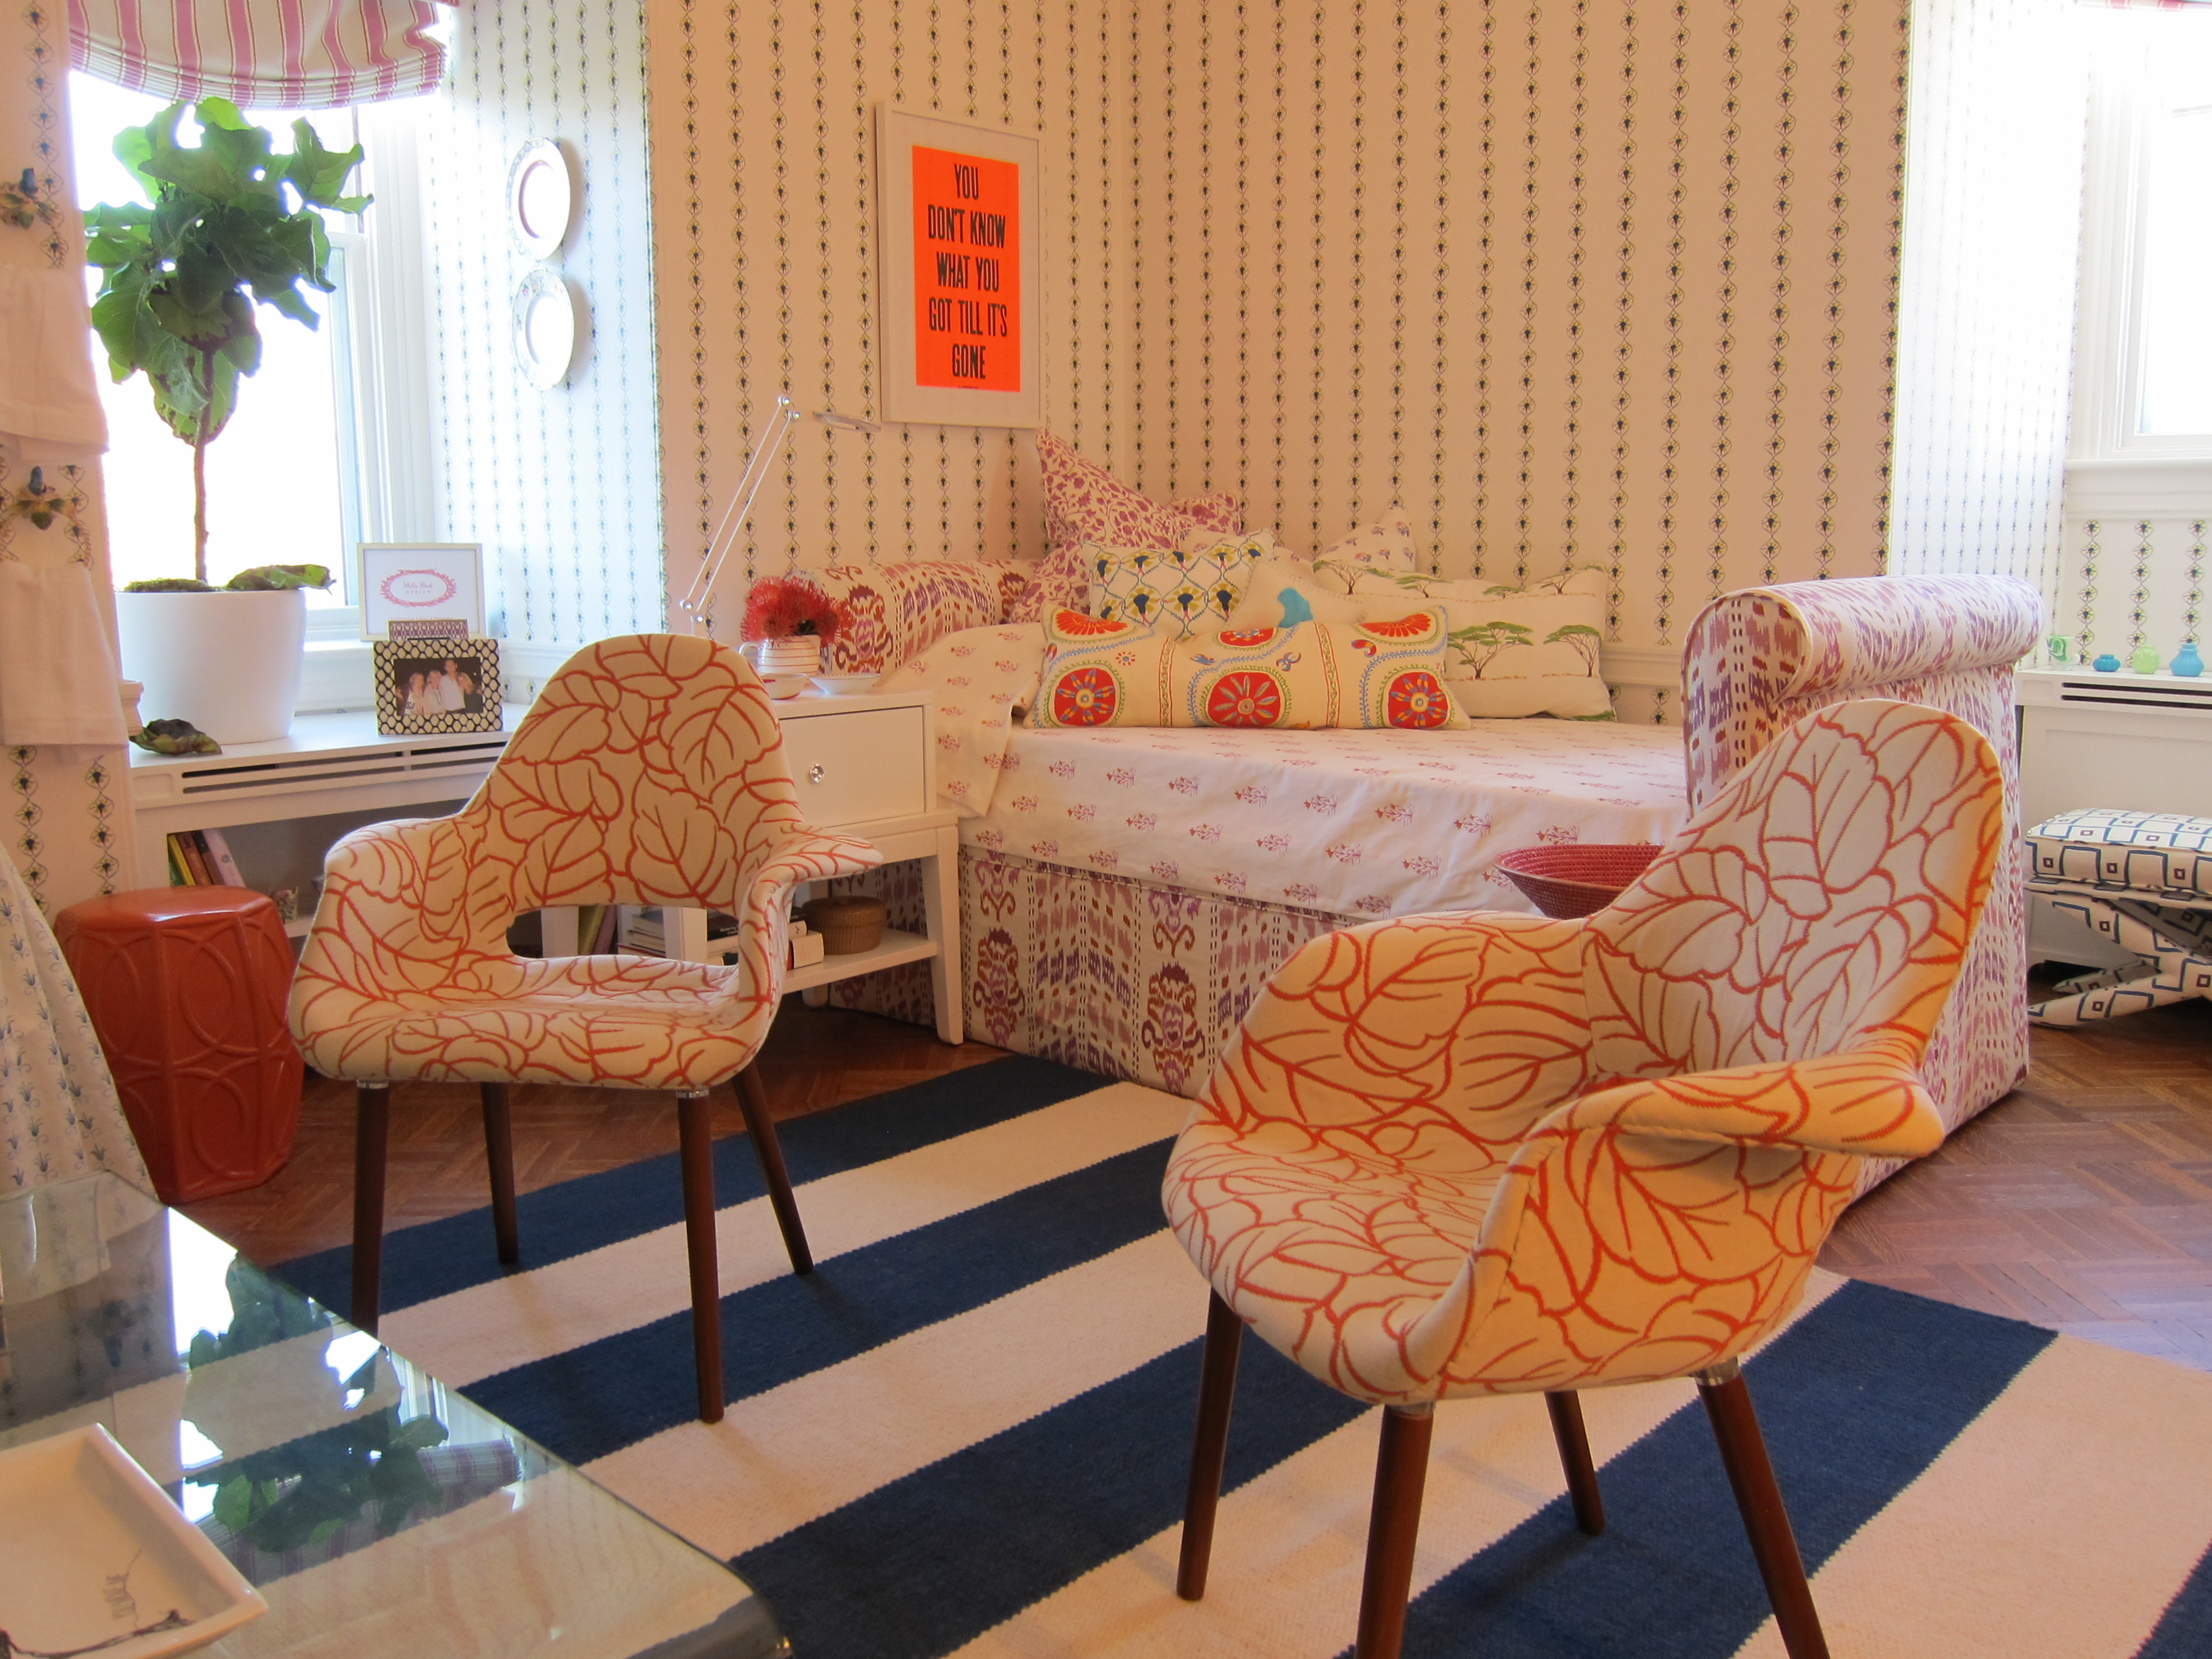 Mally Skok Young Woman's Bedroom - JLB Show House 2012